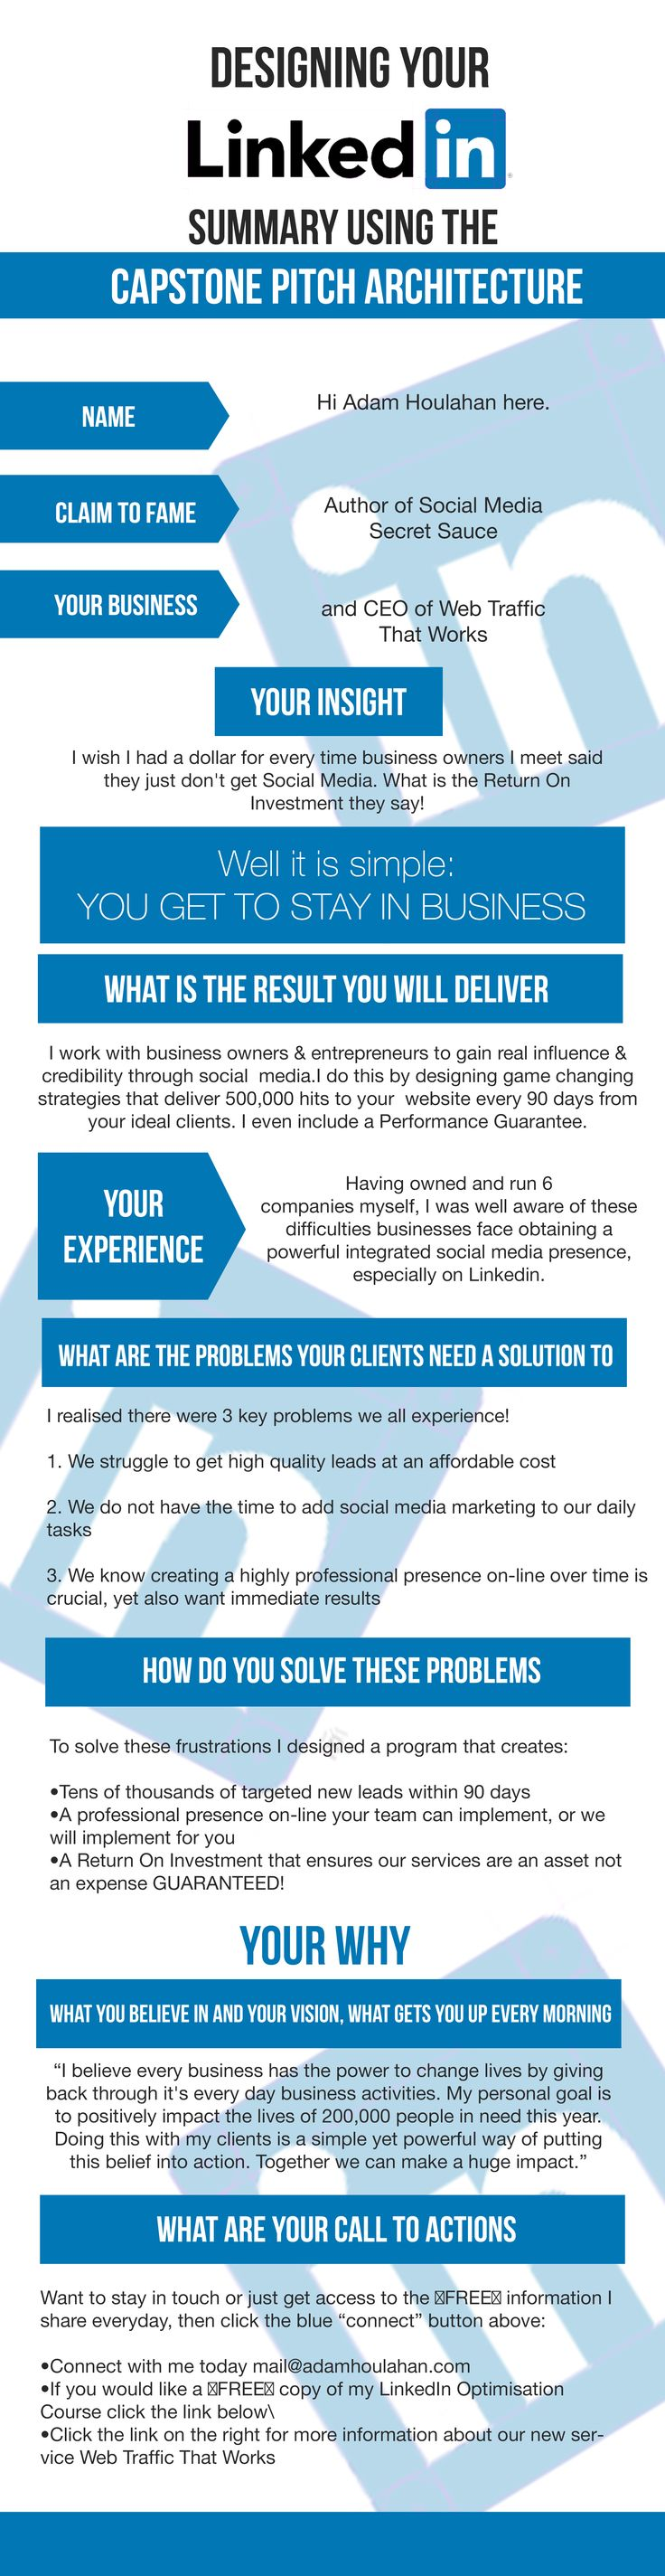 Want to know how to write a powerful #LinkedIn profile summary? Click on the image to view the finished version.